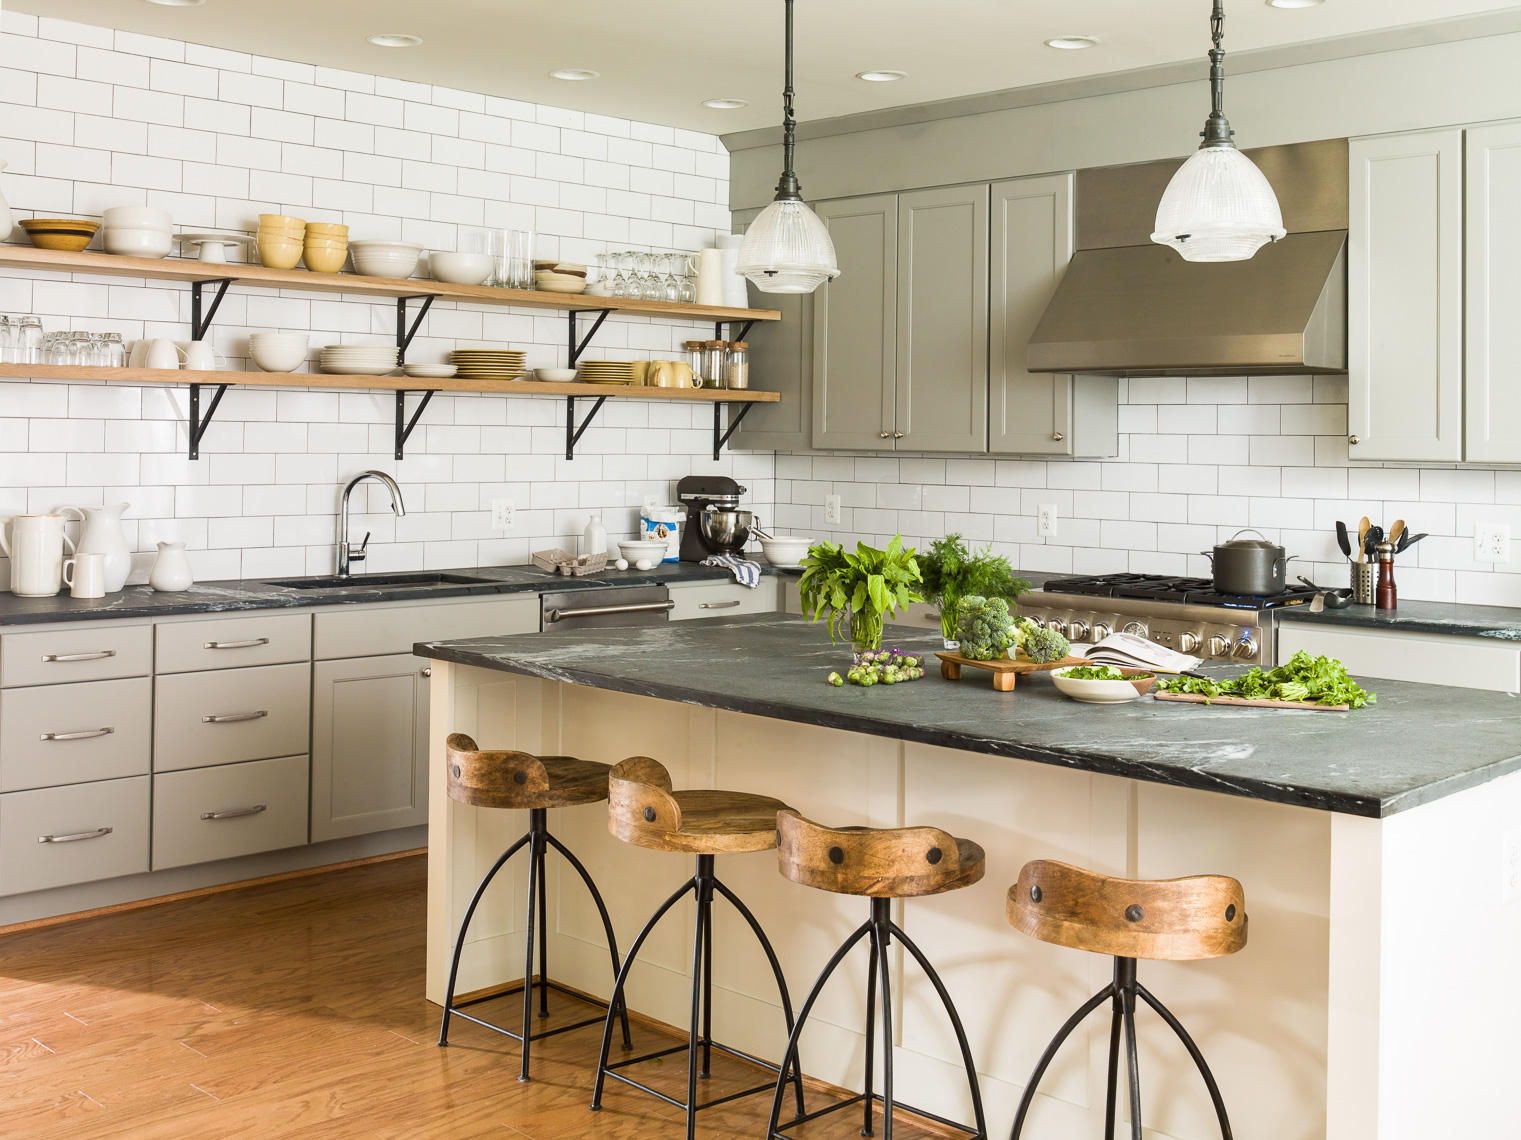 {Un Oiled Soapstone In Our Clientsu0027 Kitchen Featured In My Book... These  Are Some Of THE MOST Beautiful Counters Iu0027ve Ever Seen In Person... Theyu0027re  A ...